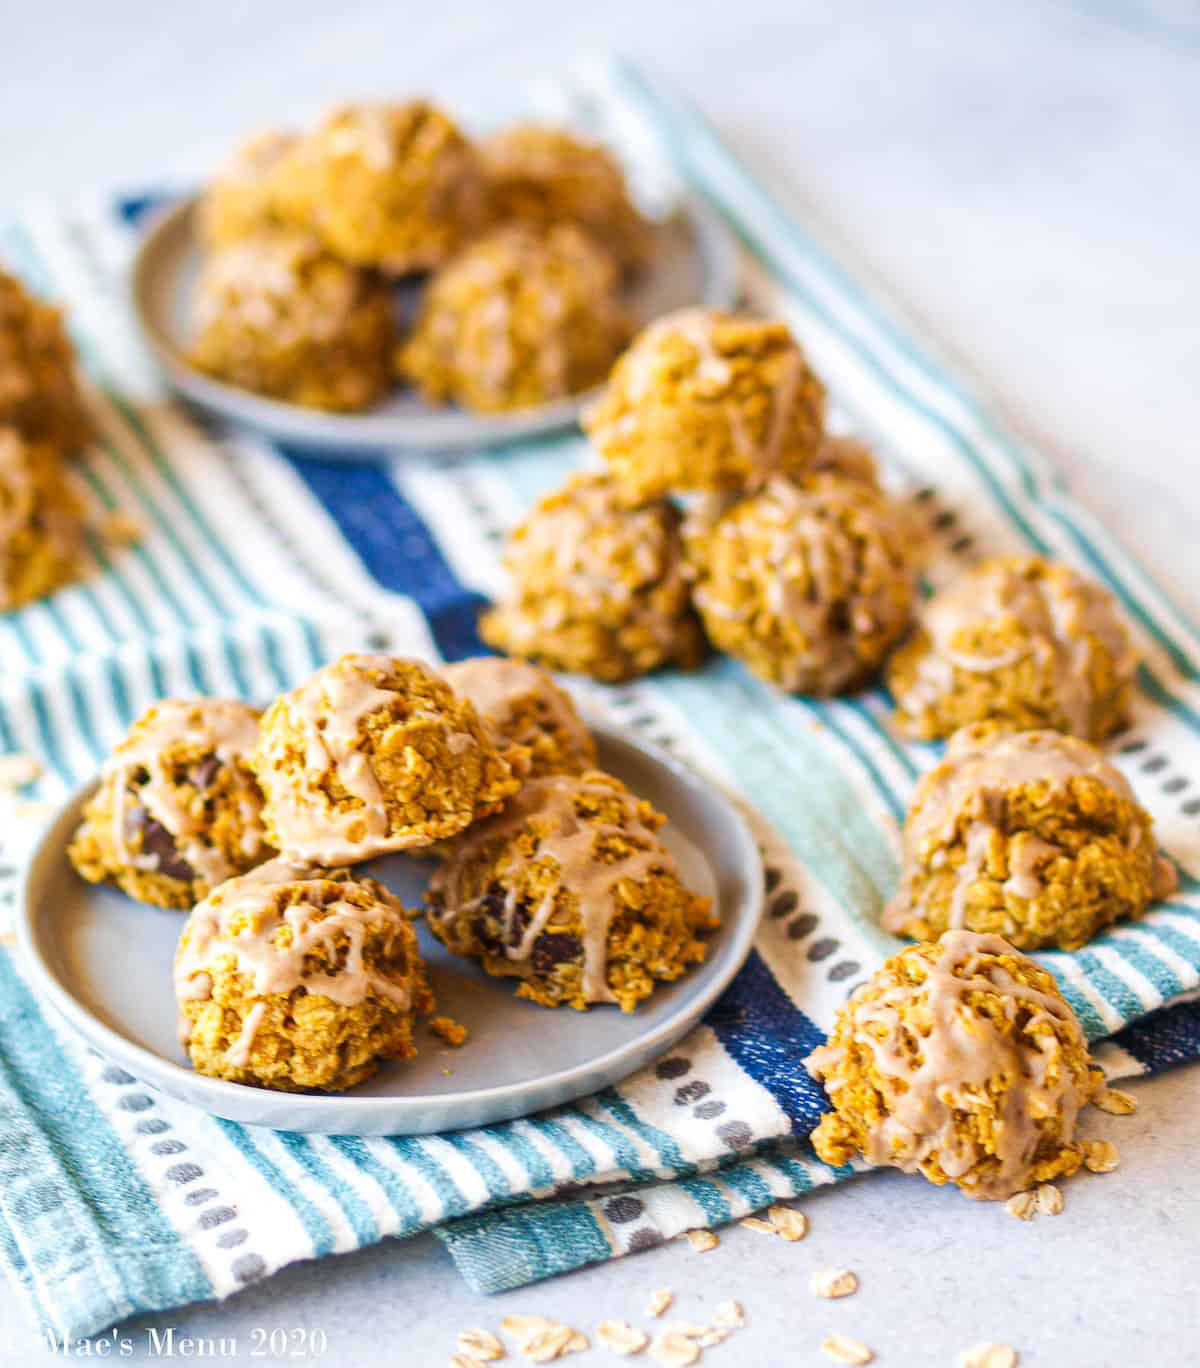 Gluten-free oatmeal pumpkin cookies on a towel and 2 small dishes